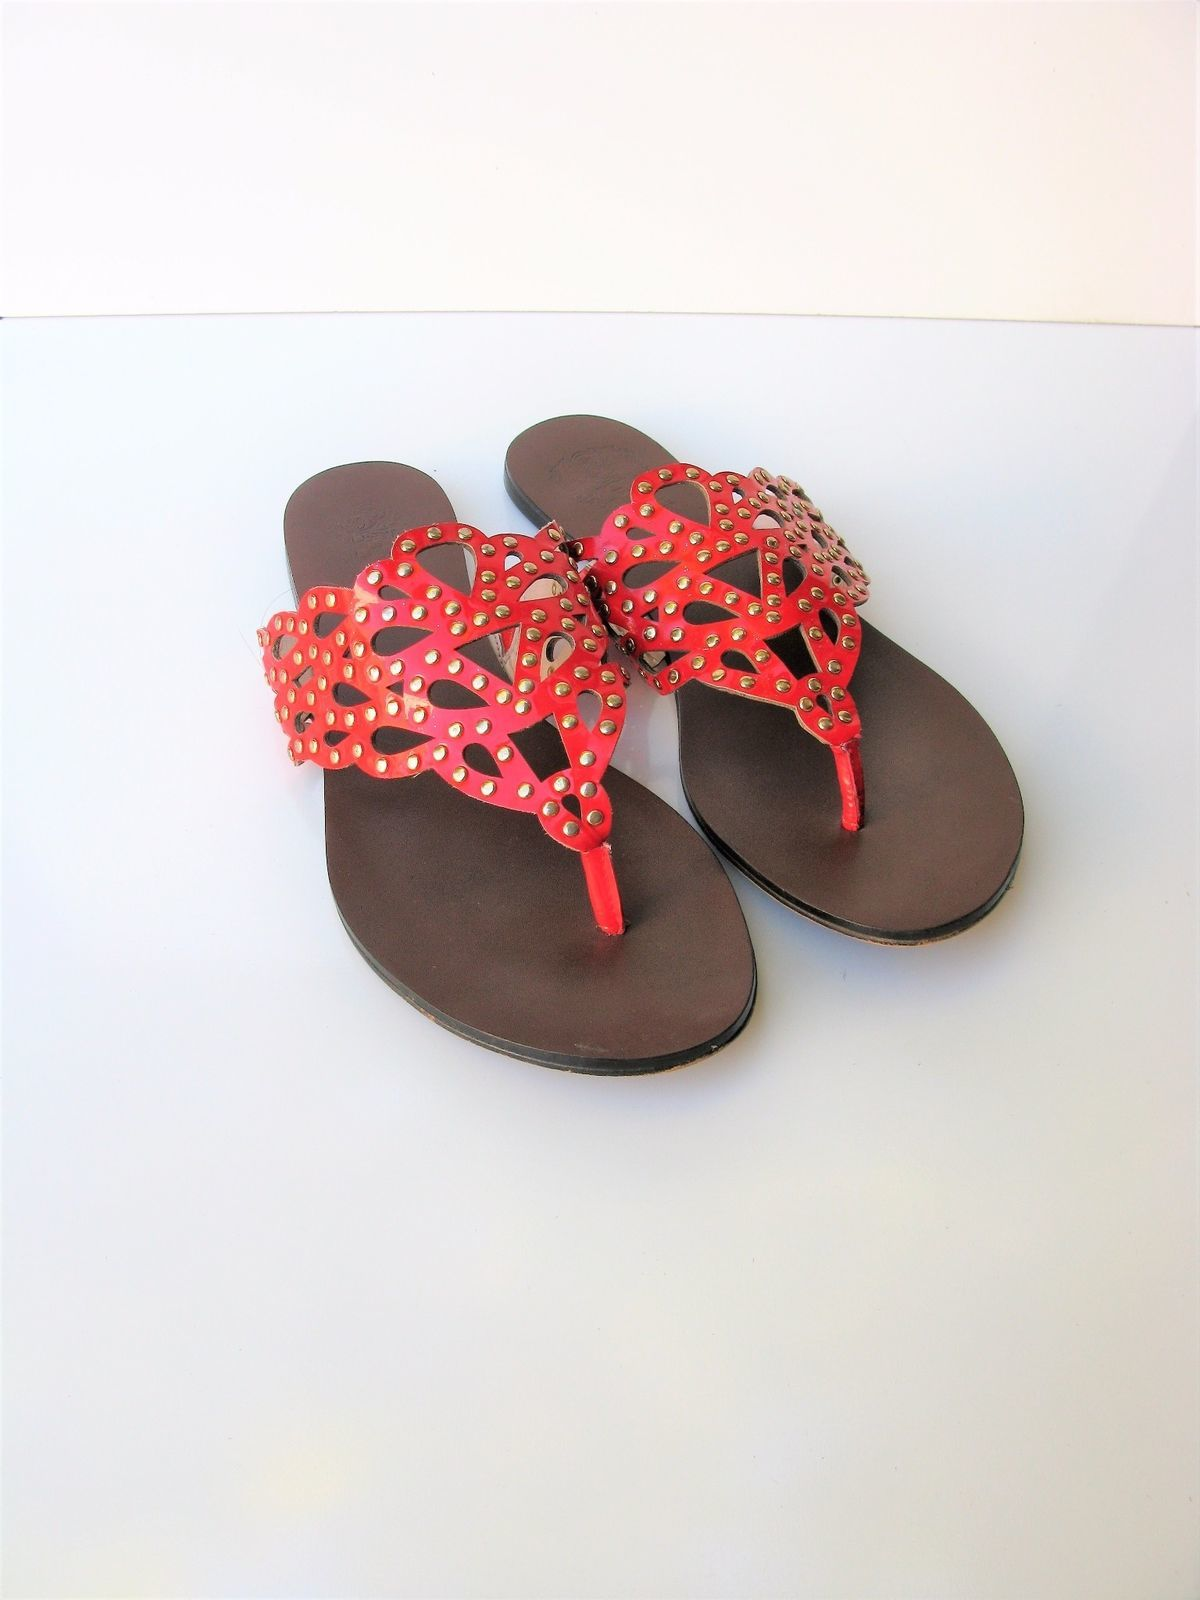 Sandals Flip Flops Vince Camuto Elian Leather Studded Thong Sandal 8/8.5 $98